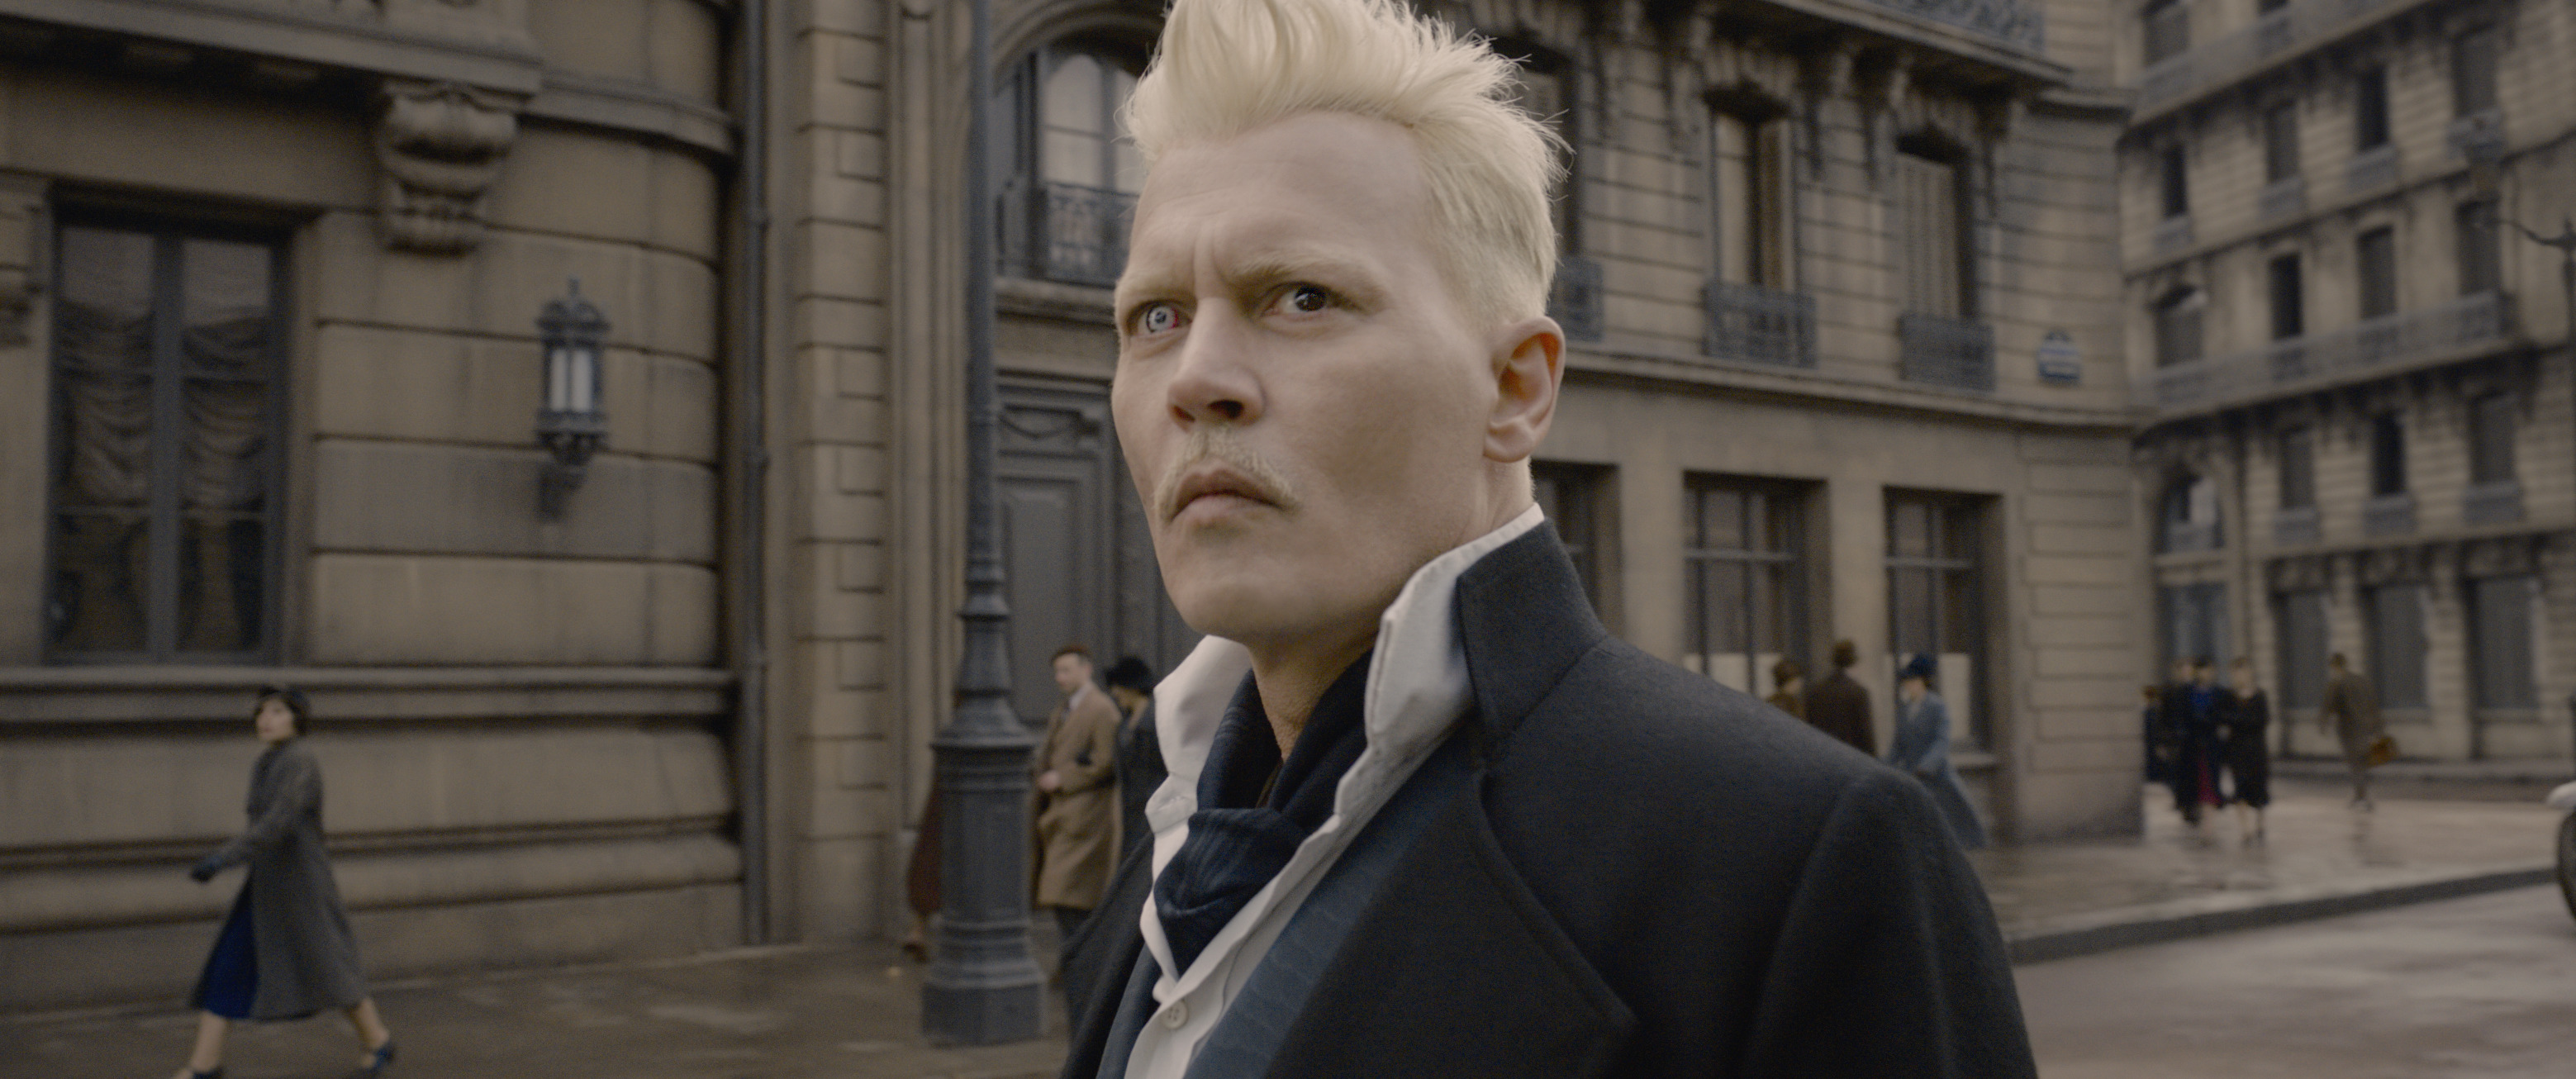 Johnny Depp as Gellert Grindelwald